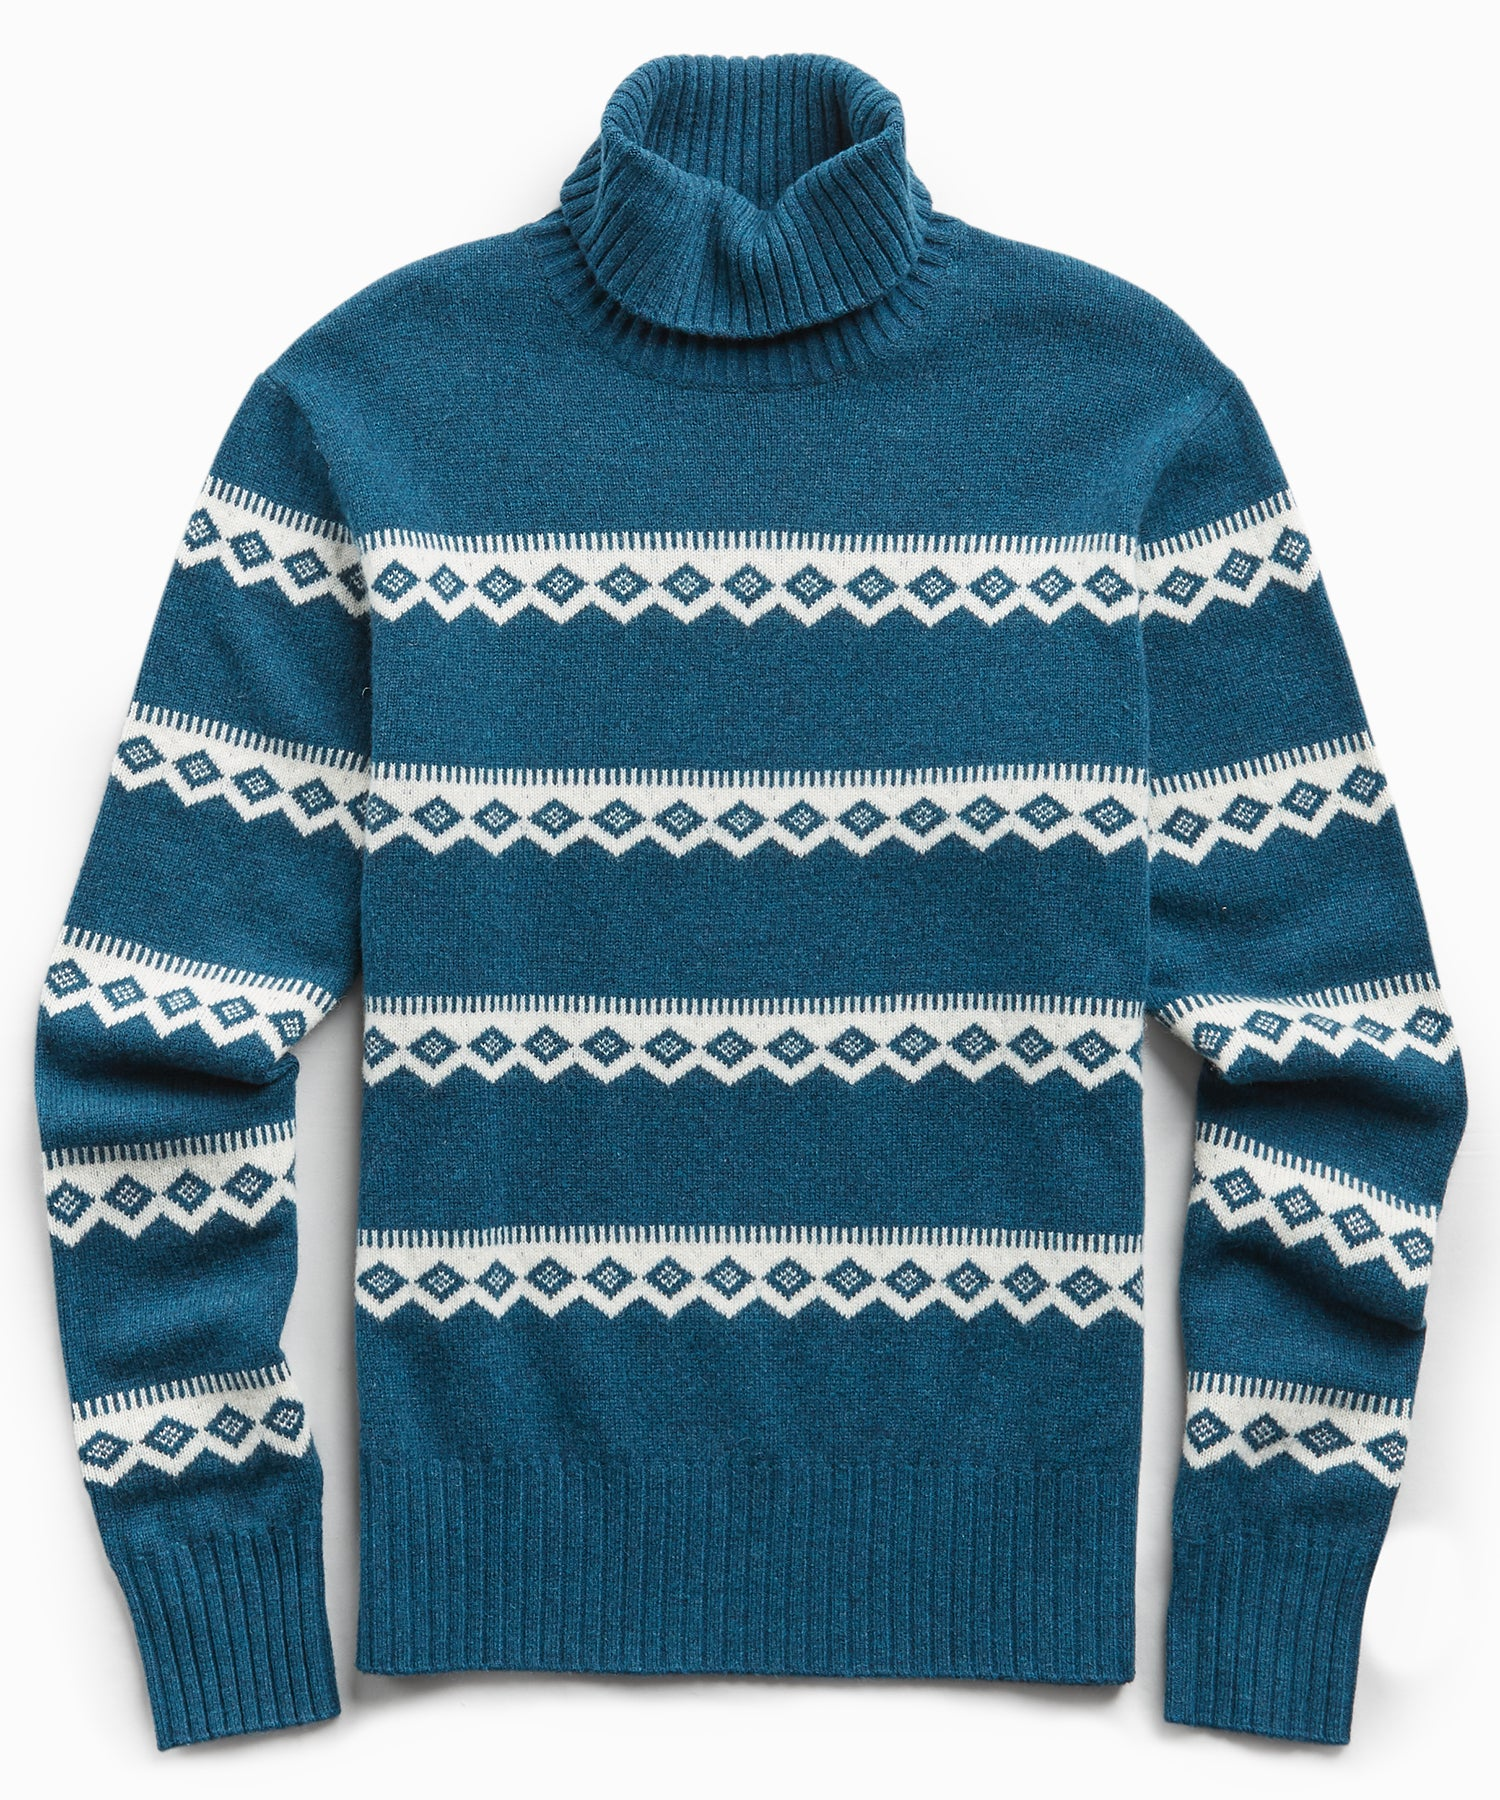 Wool Fairisle Turtleneck in Petrol